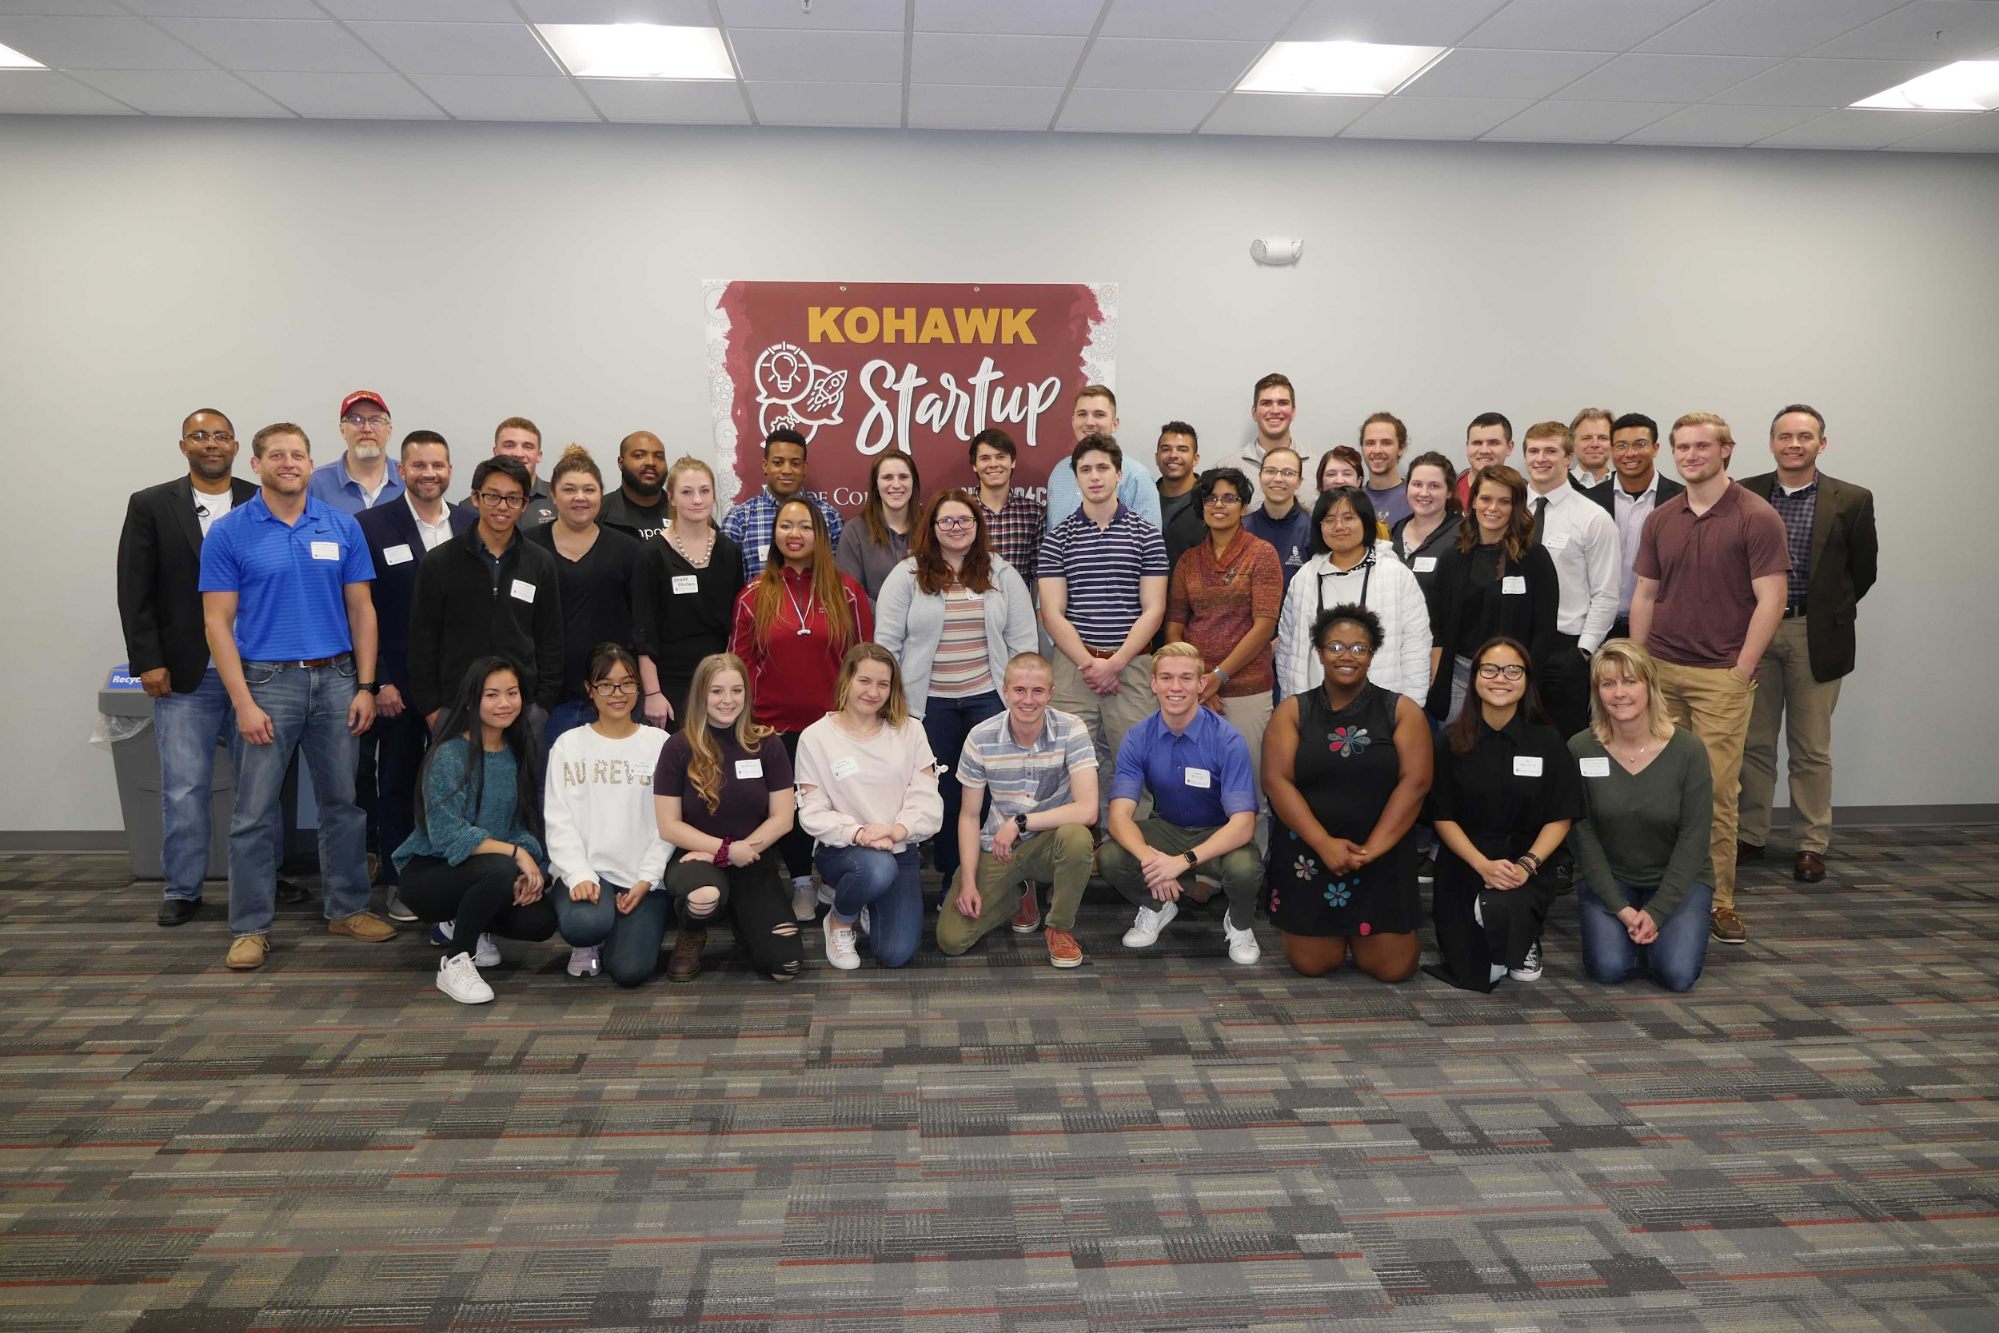 Kohawk Startup Group Photo